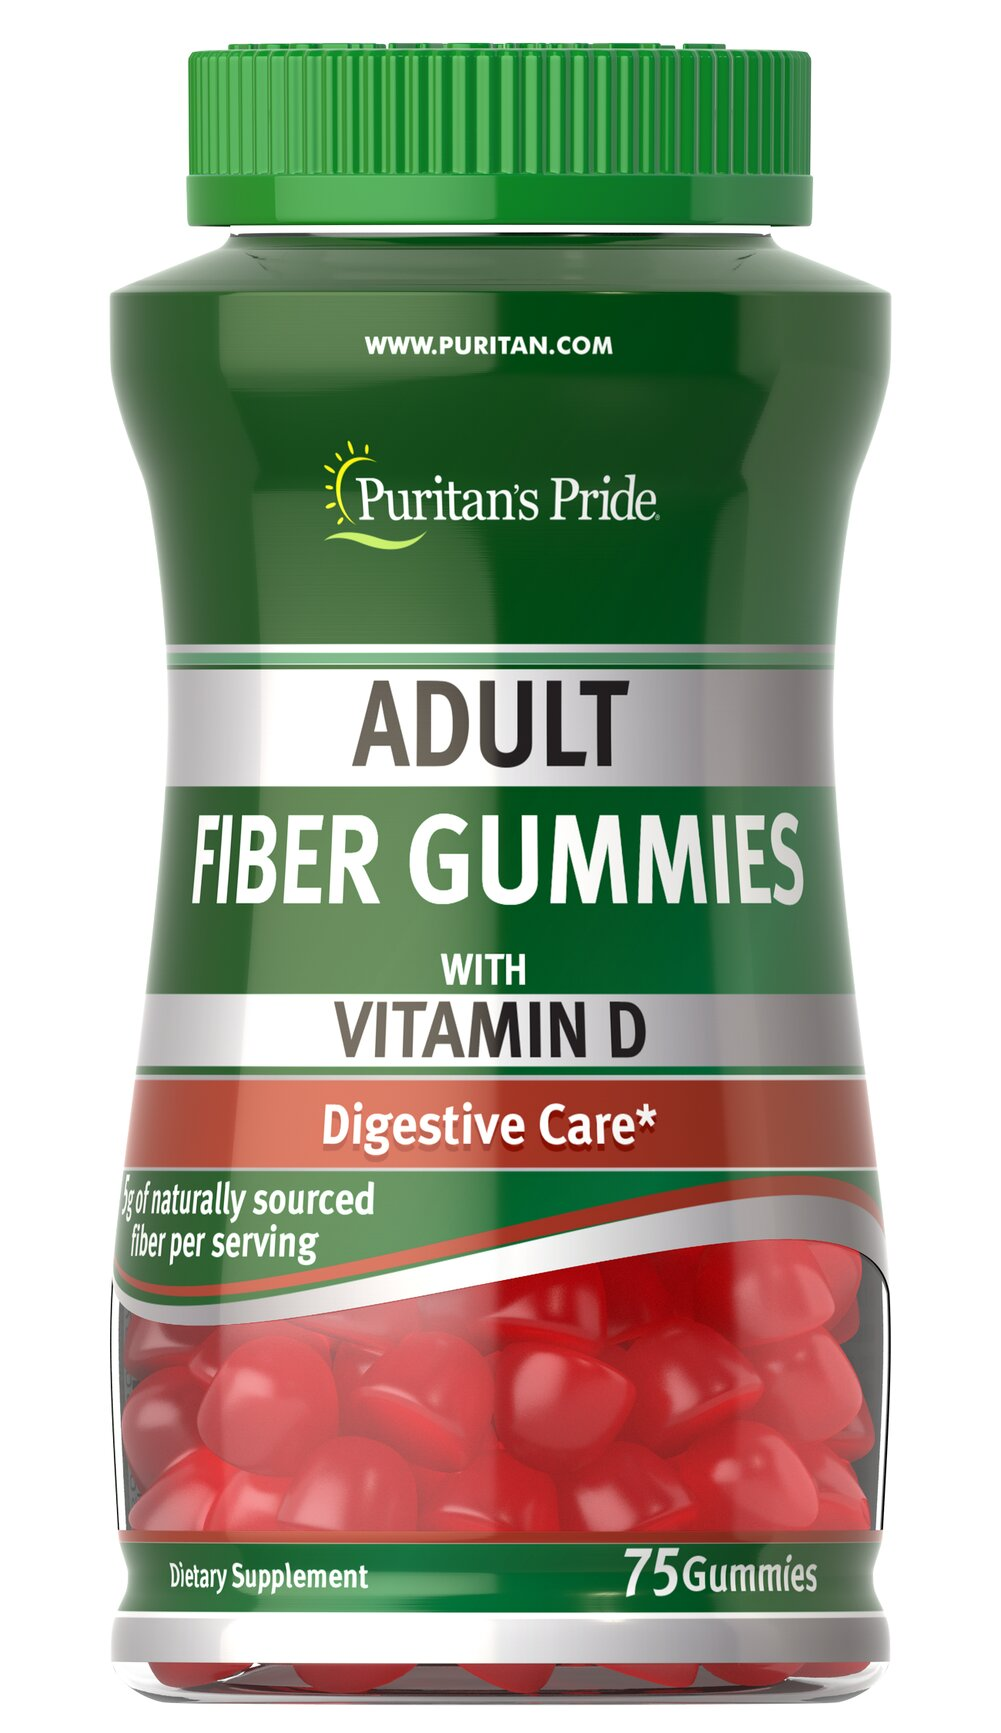 Adult Fiber Gummies with Vitamin D <p><span></span>For Colon & Digestive care.**</p><p><span></span>Includes Vitamin D.</p><p><span></span>Gummy vitamin for adults.</p><p>Adult Fiber Gummies with Vitamin D are a good dietary source of fiber and help move food through the intestinal tract.** As a daily addition to your diet, one serving of Adult Fiber Gummies with Vitamin D contributes up to 5 grams of the fiber